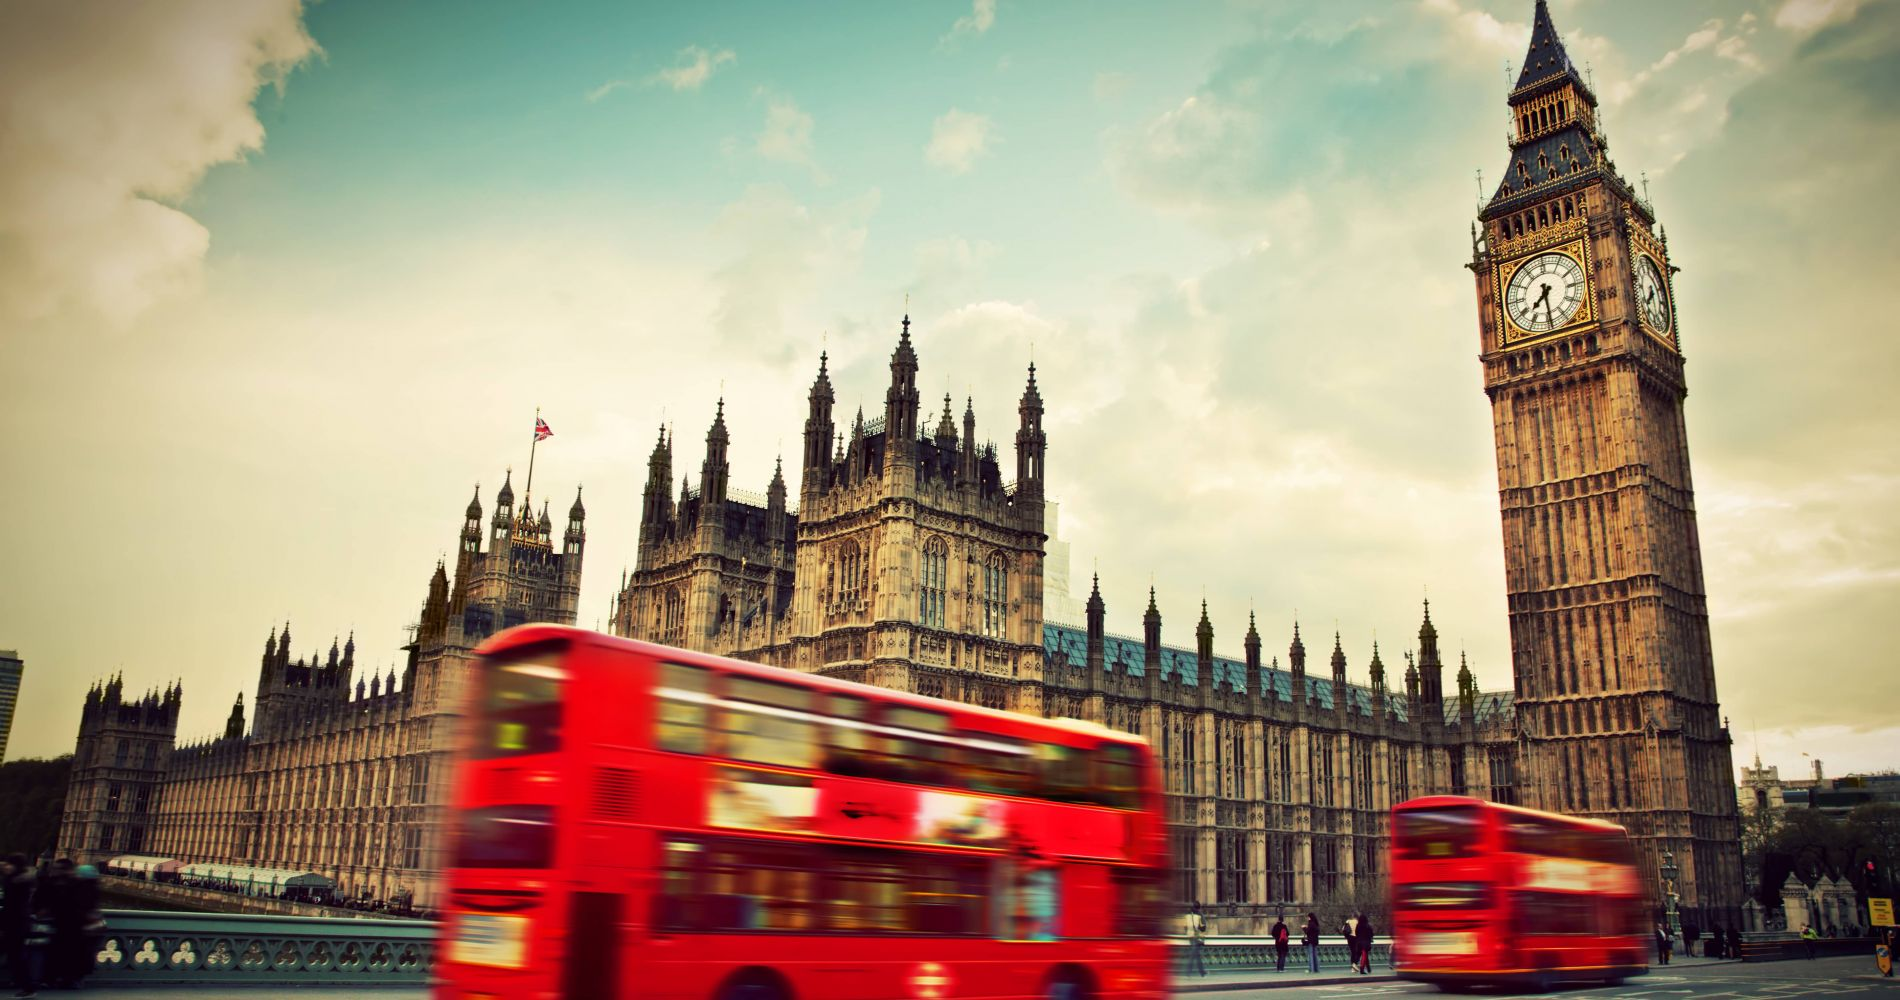 Visit London with 1 Day Hop-On Hop-Off London Bus Tour